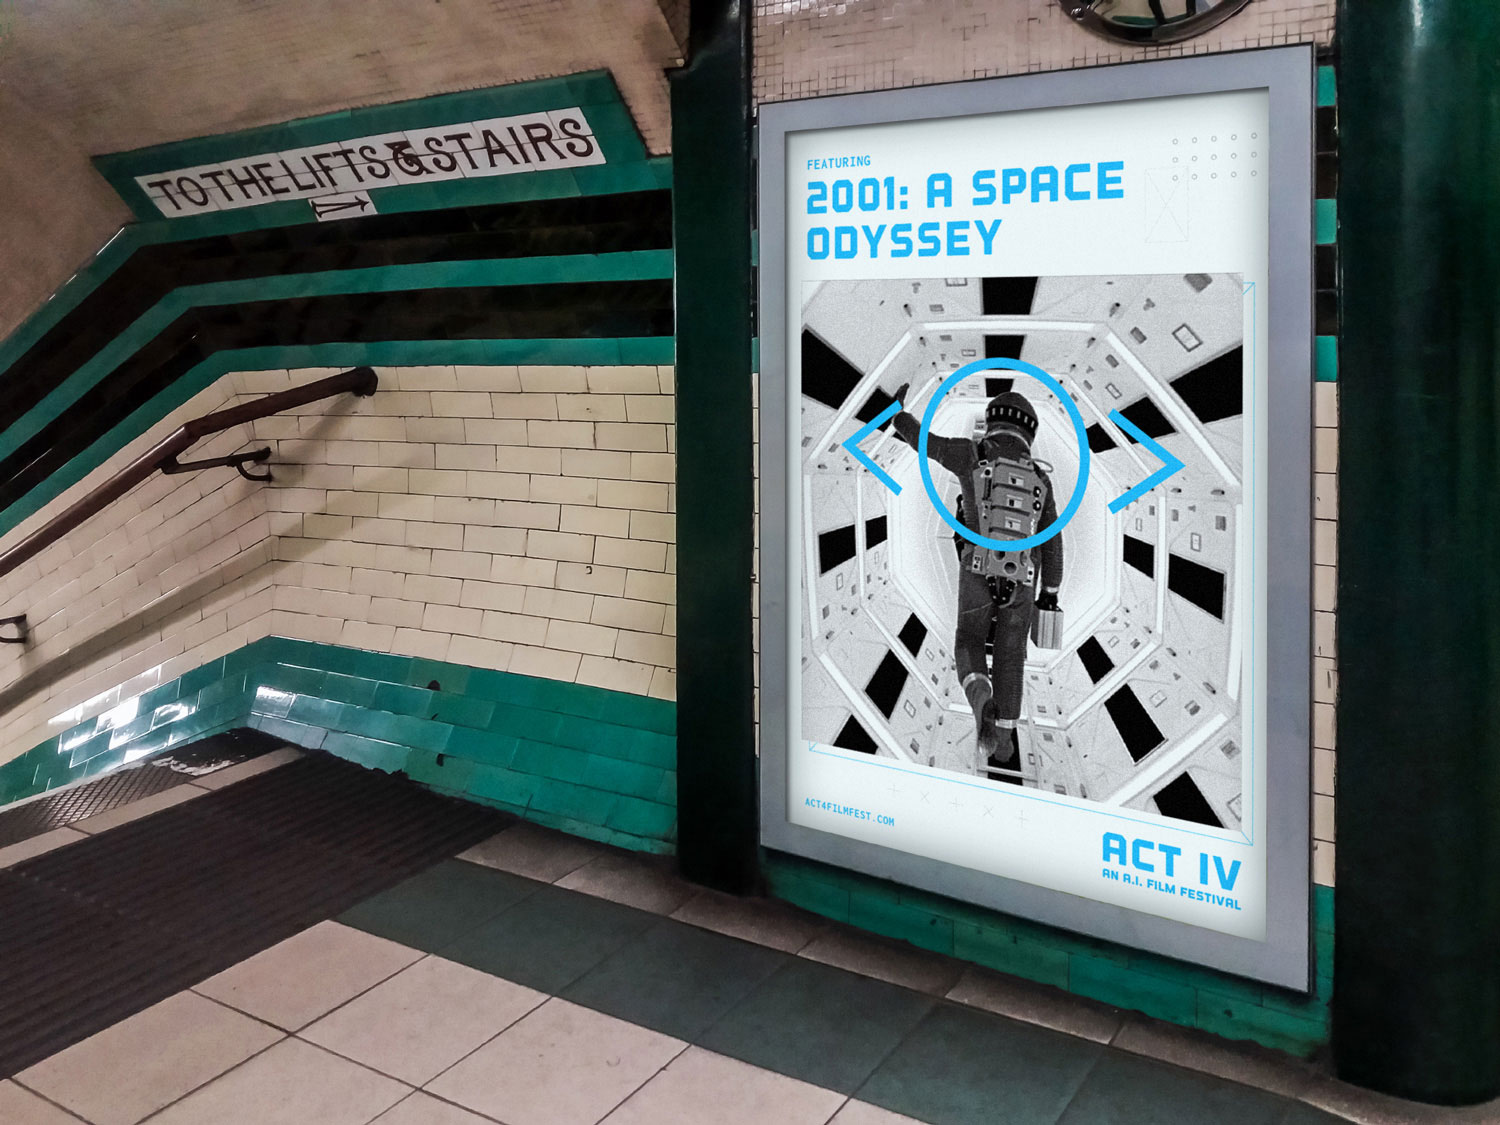 ACT IV Poster in the Underground